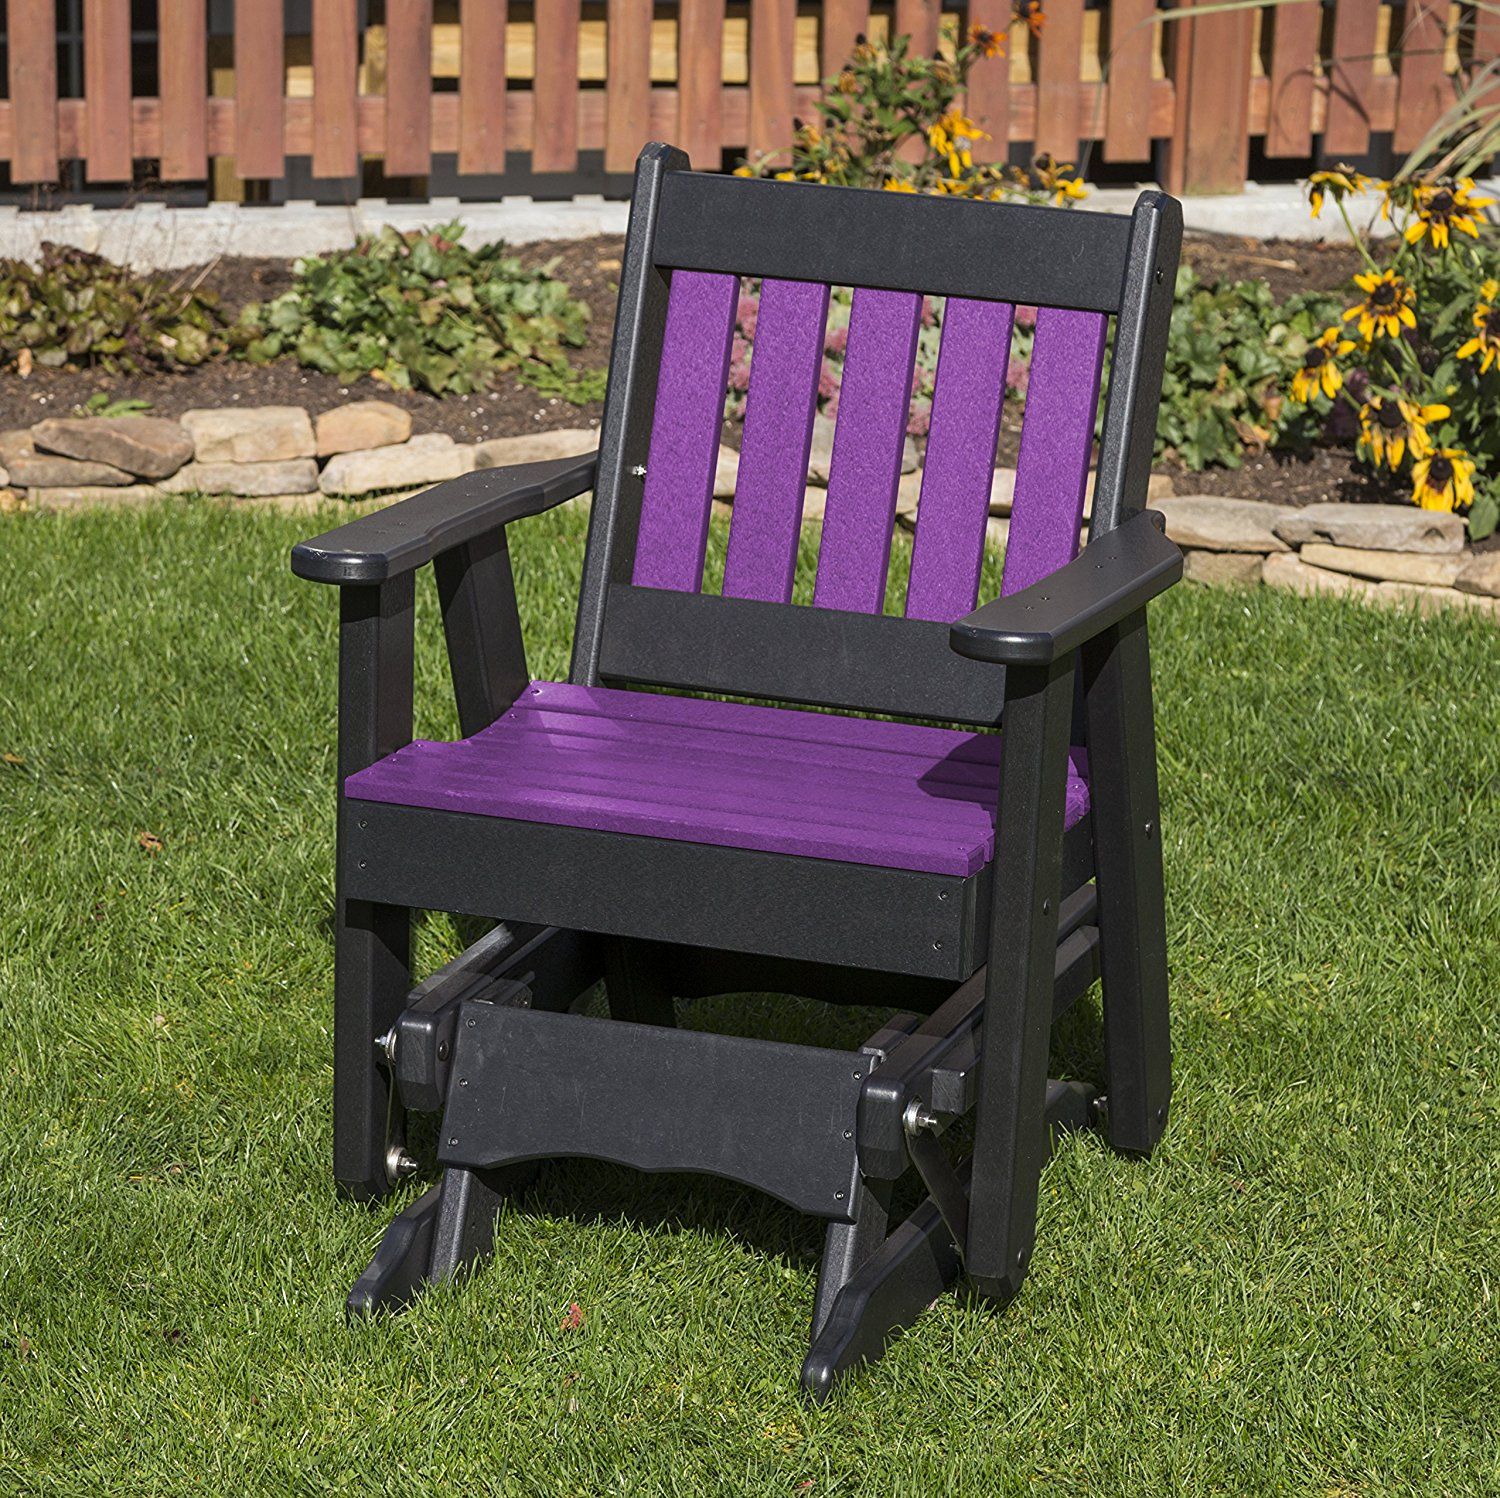 Outdoor Patio Garden Lawn Exterior Bright Purple Finish Poly Lumber Mission 2 Ft Glider Everlasting - Amish Crafted